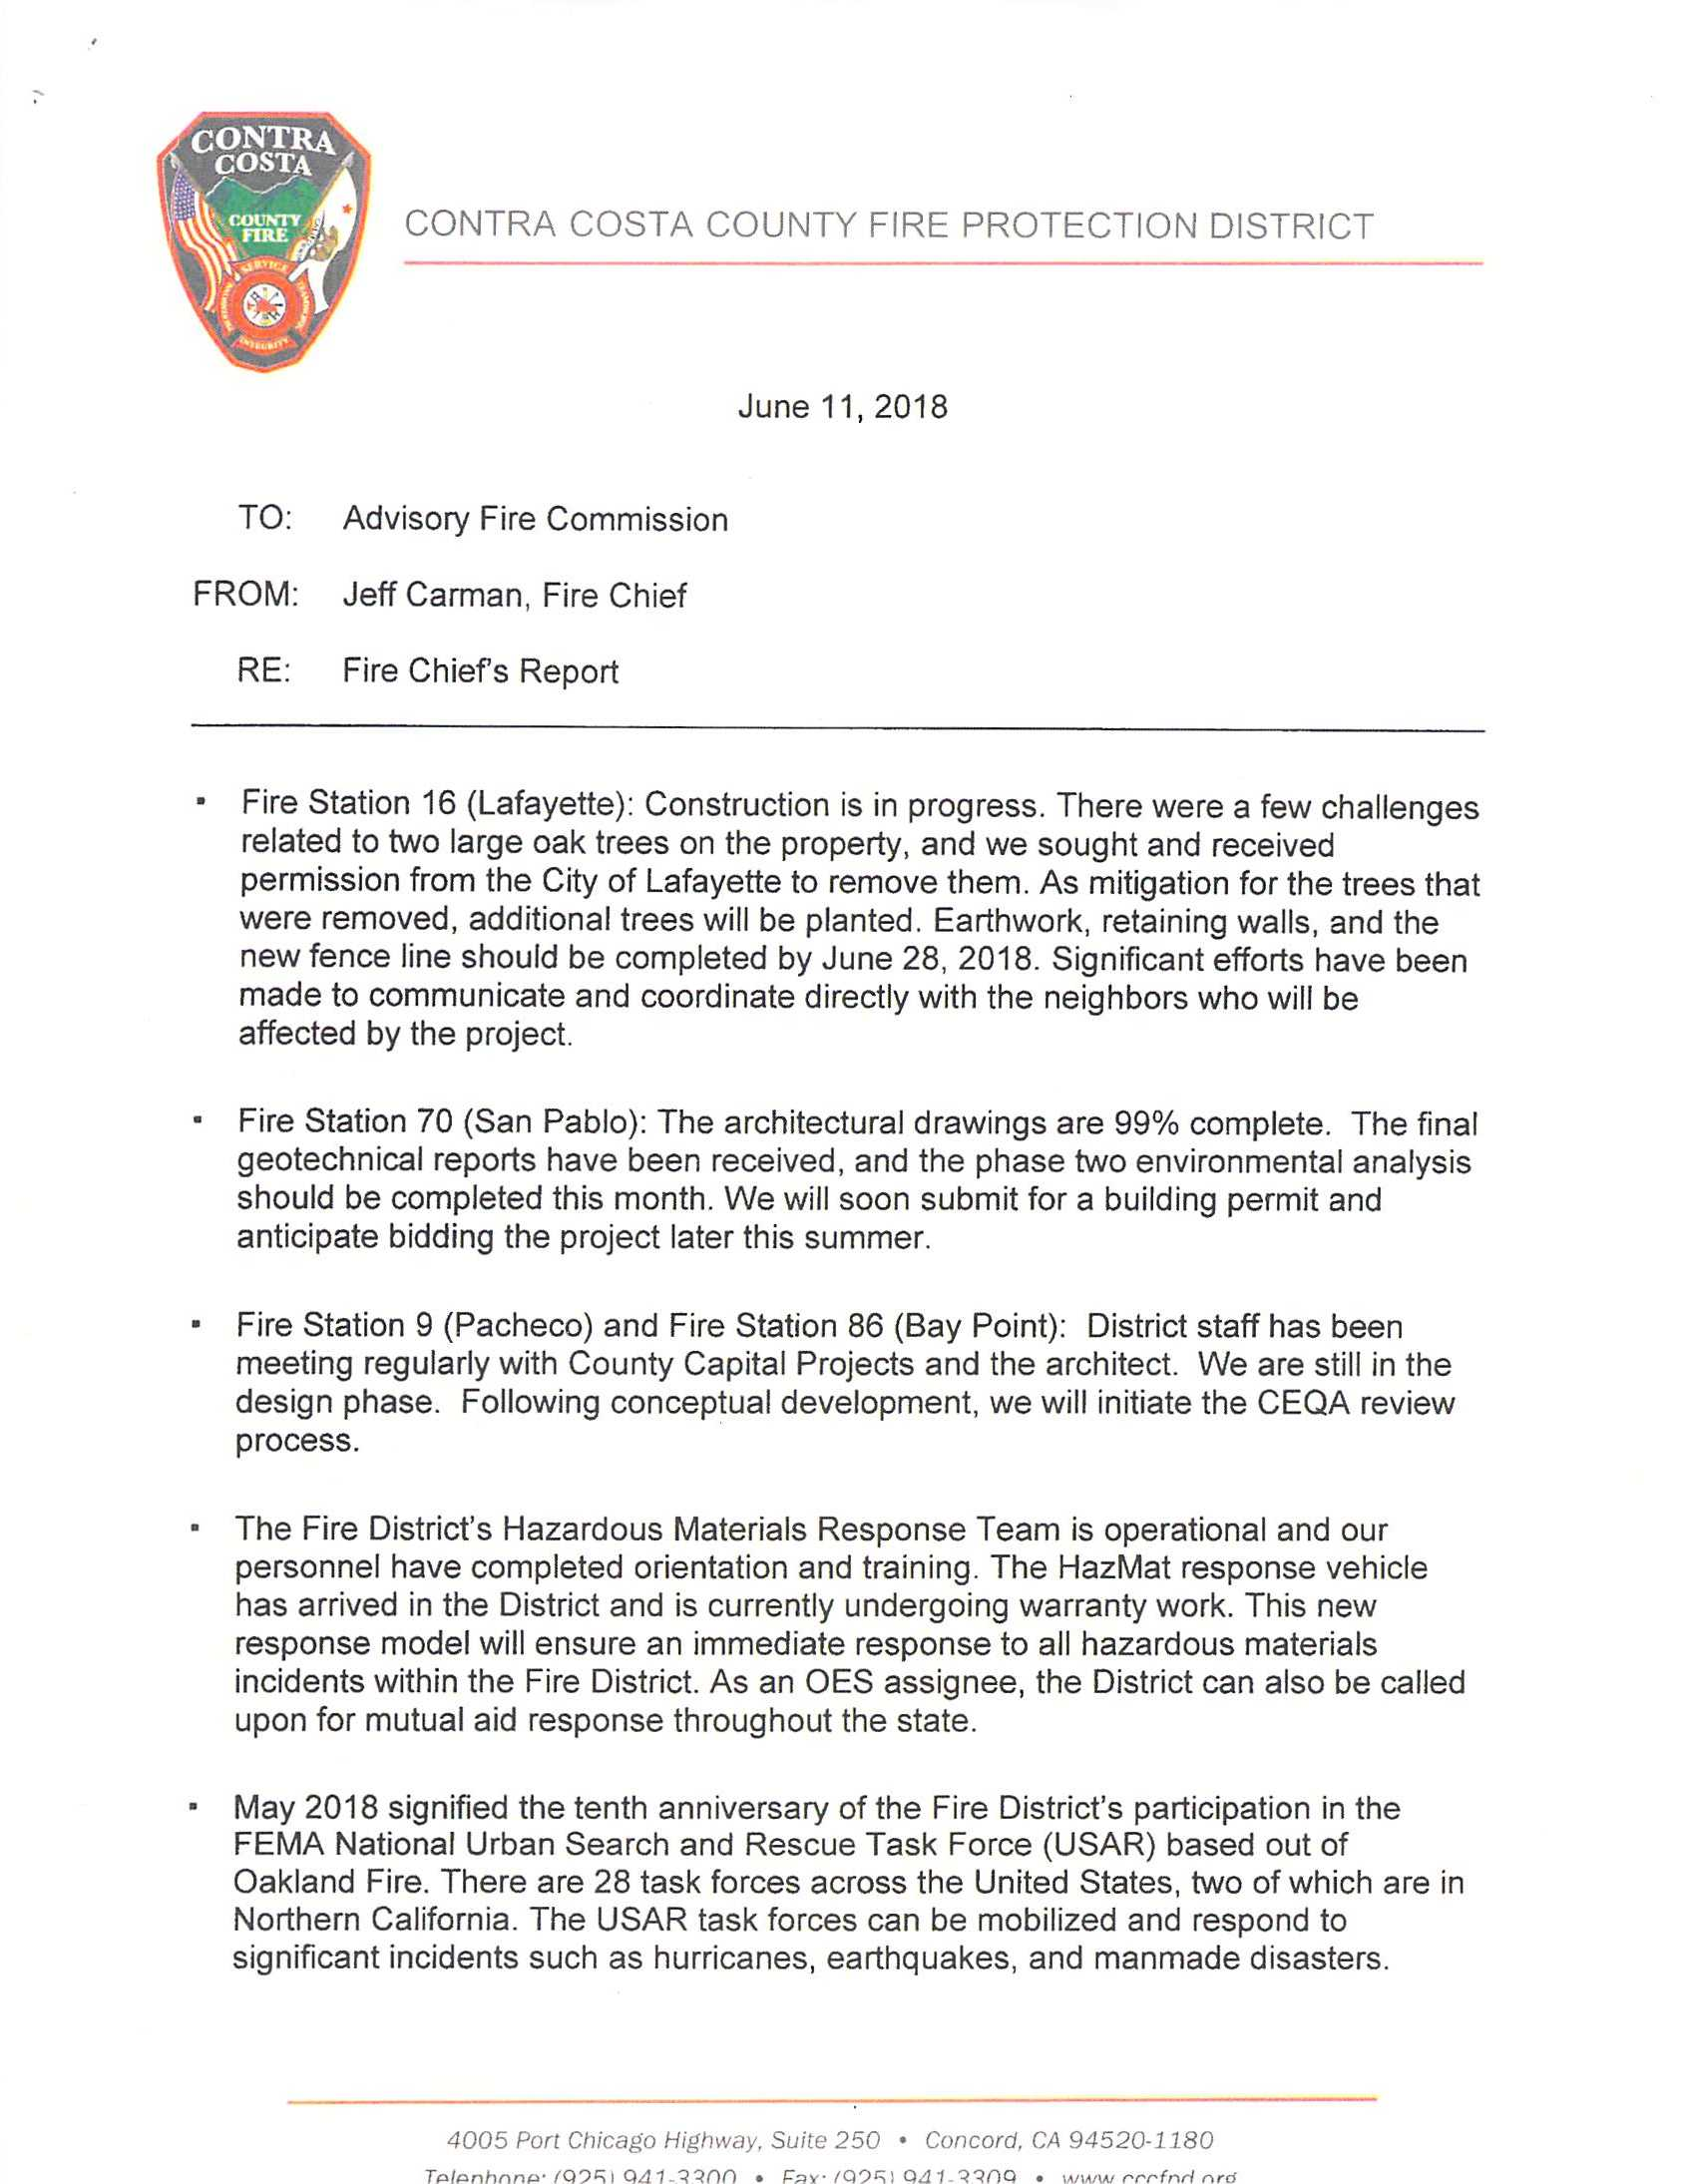 Contra Costa Fire Chief Report (1)_1.jpg